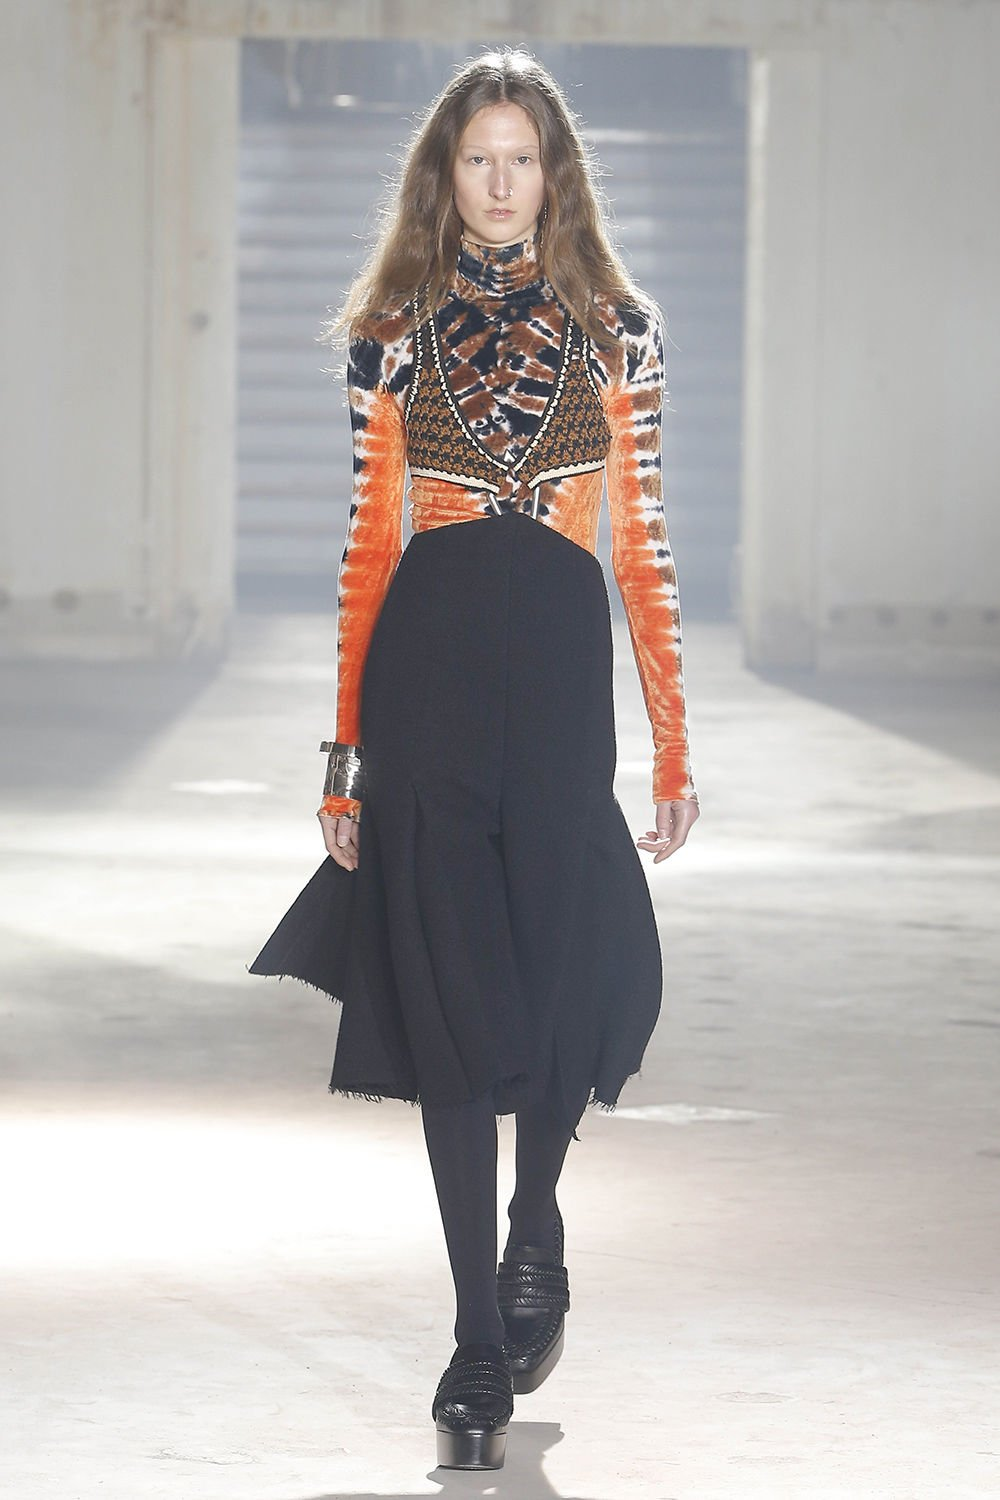 proenza schouler fall 2018 runway look 2